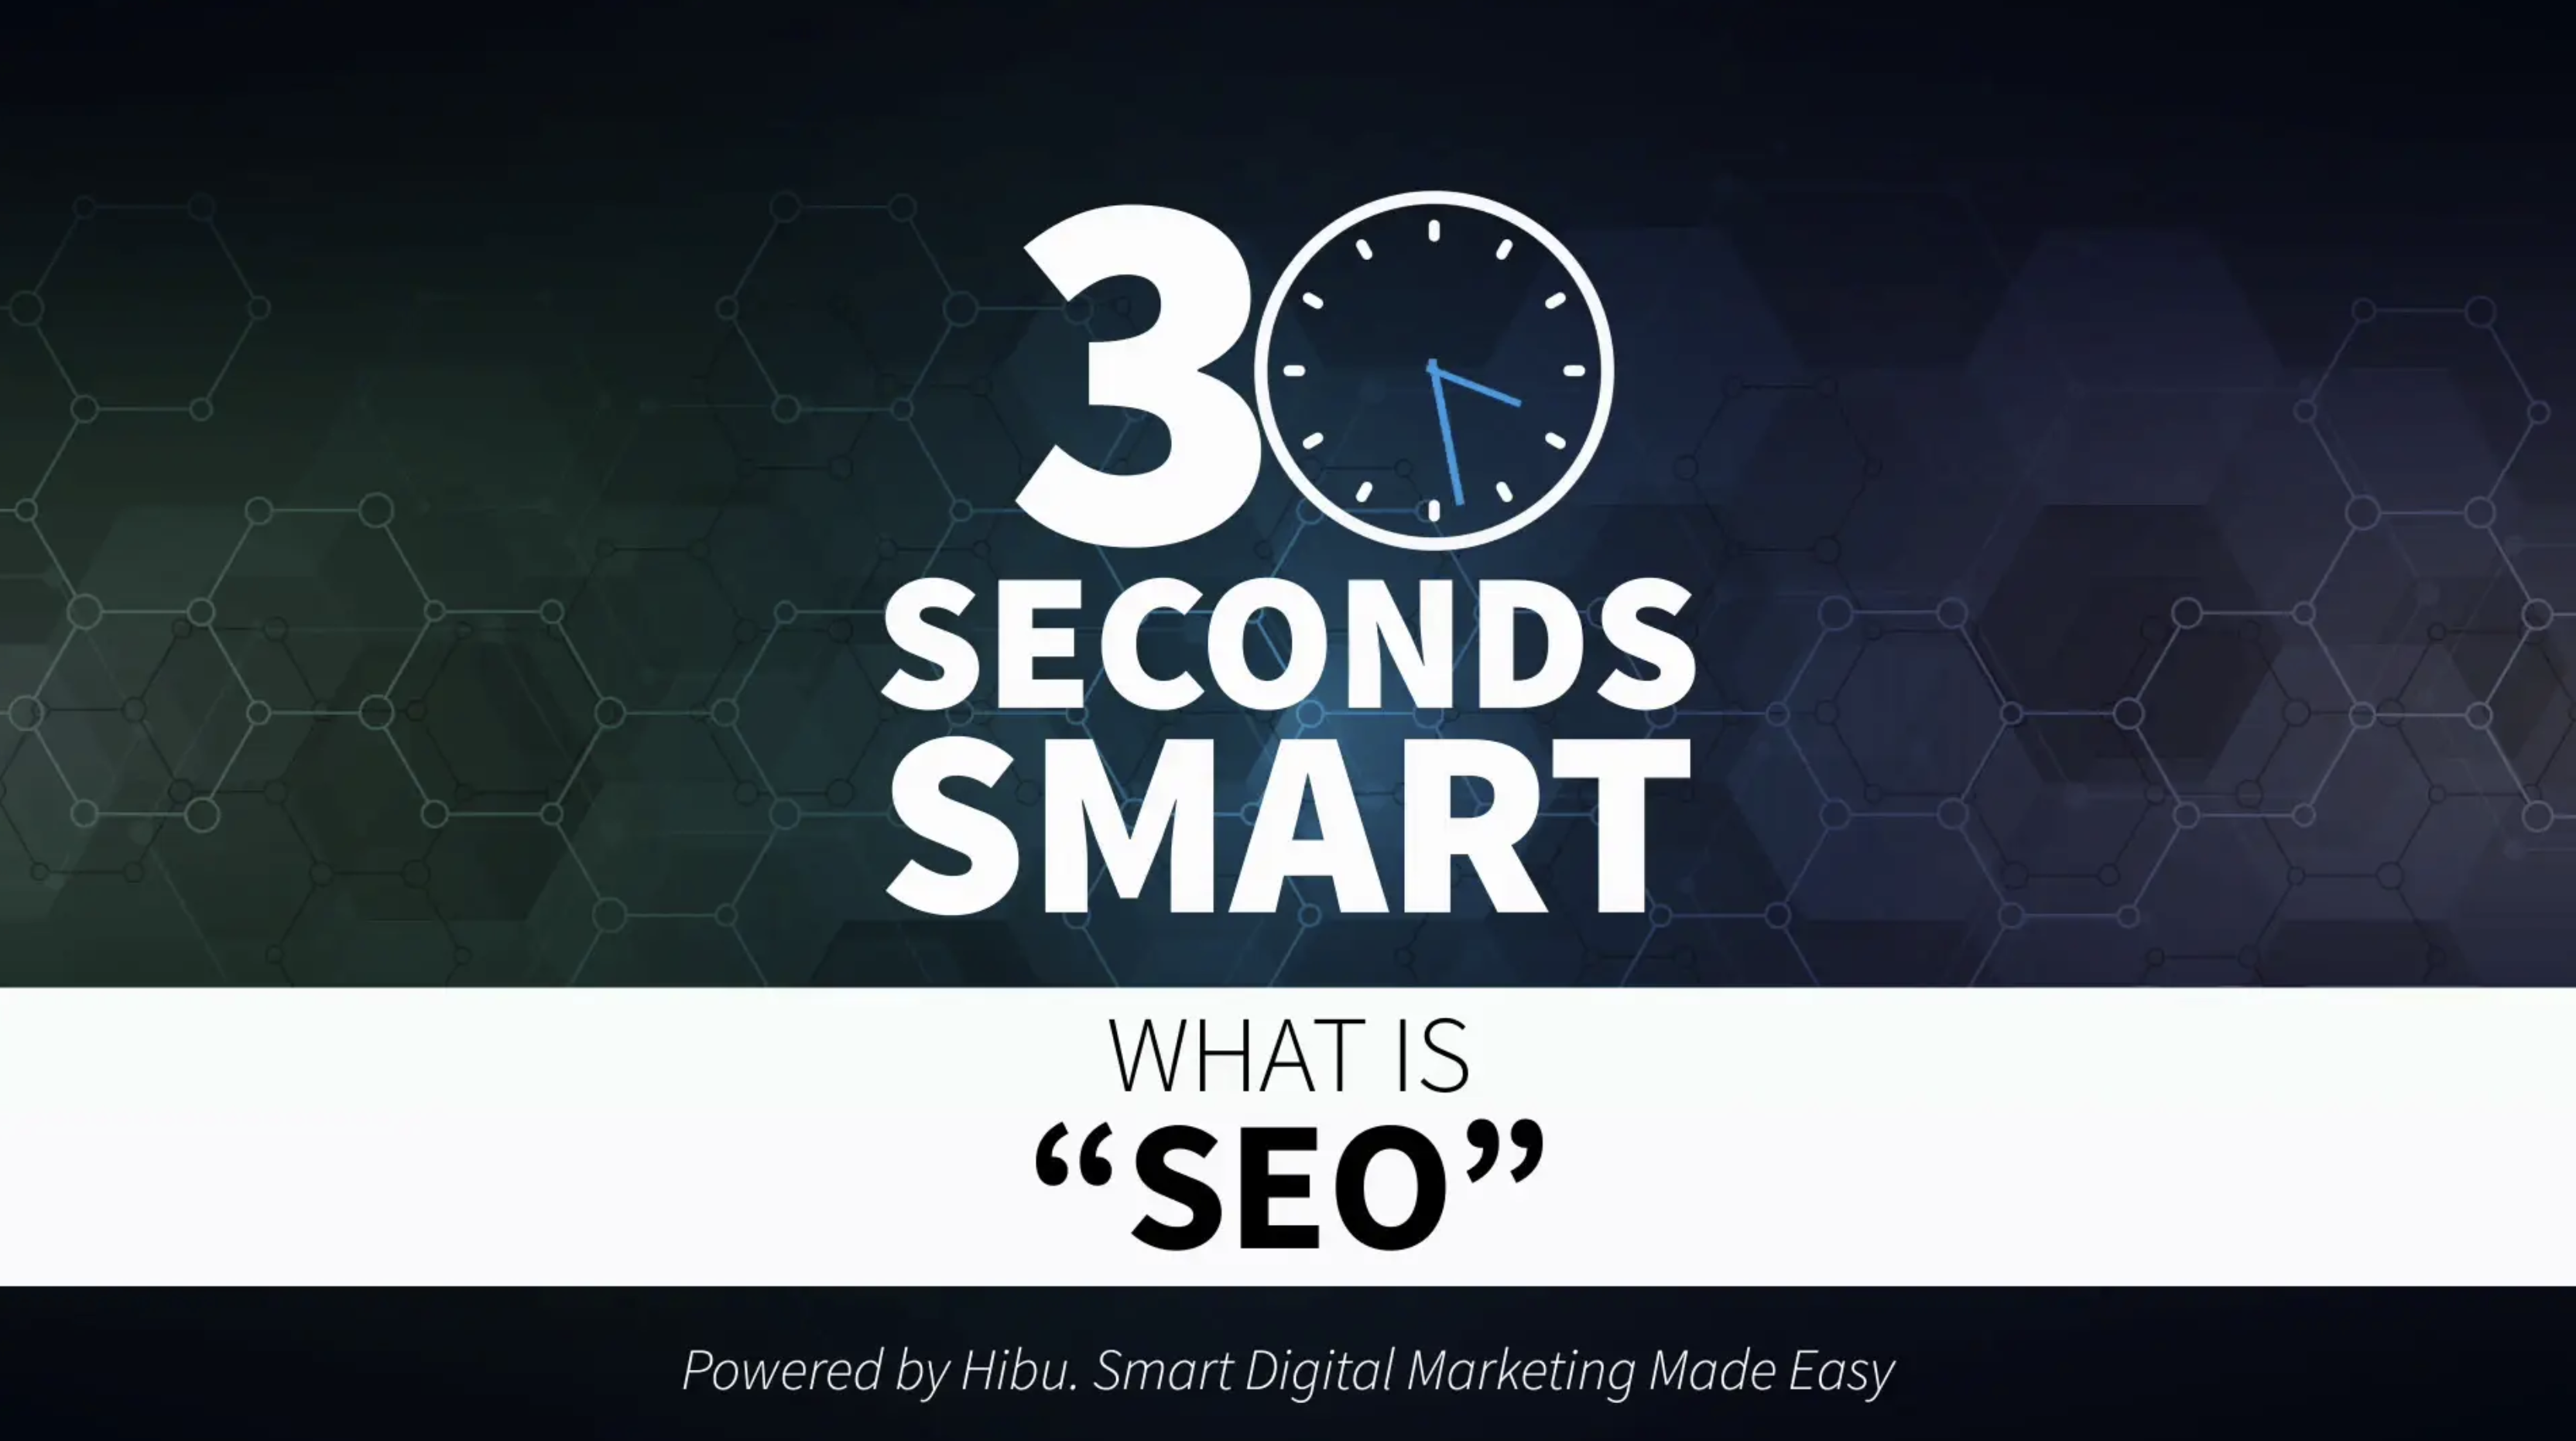 30-Seconds Smart: What is SEO?